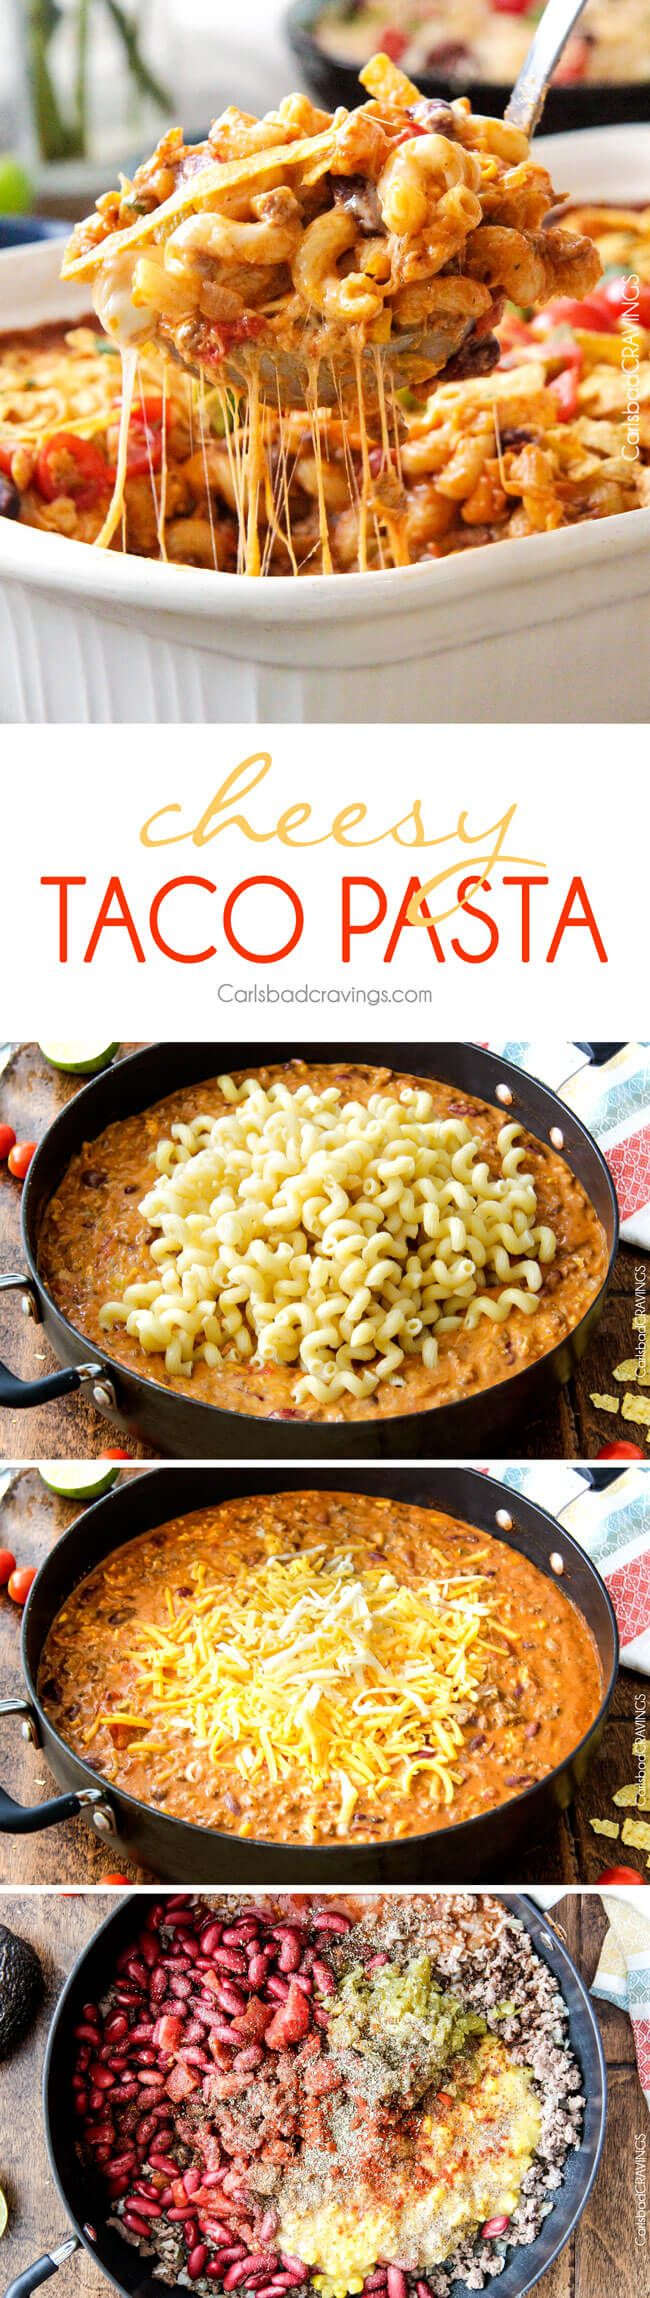 LIGHTER Cheesy Taco Pasta is my husband's absolute favorite pasta! Juicy beef, beans, pasta etc., smothered in an incredible creamy Enchilada-esque sauce out of this world delicious! Your whole family will LOVE this and its super easy! via @carlsbadcraving